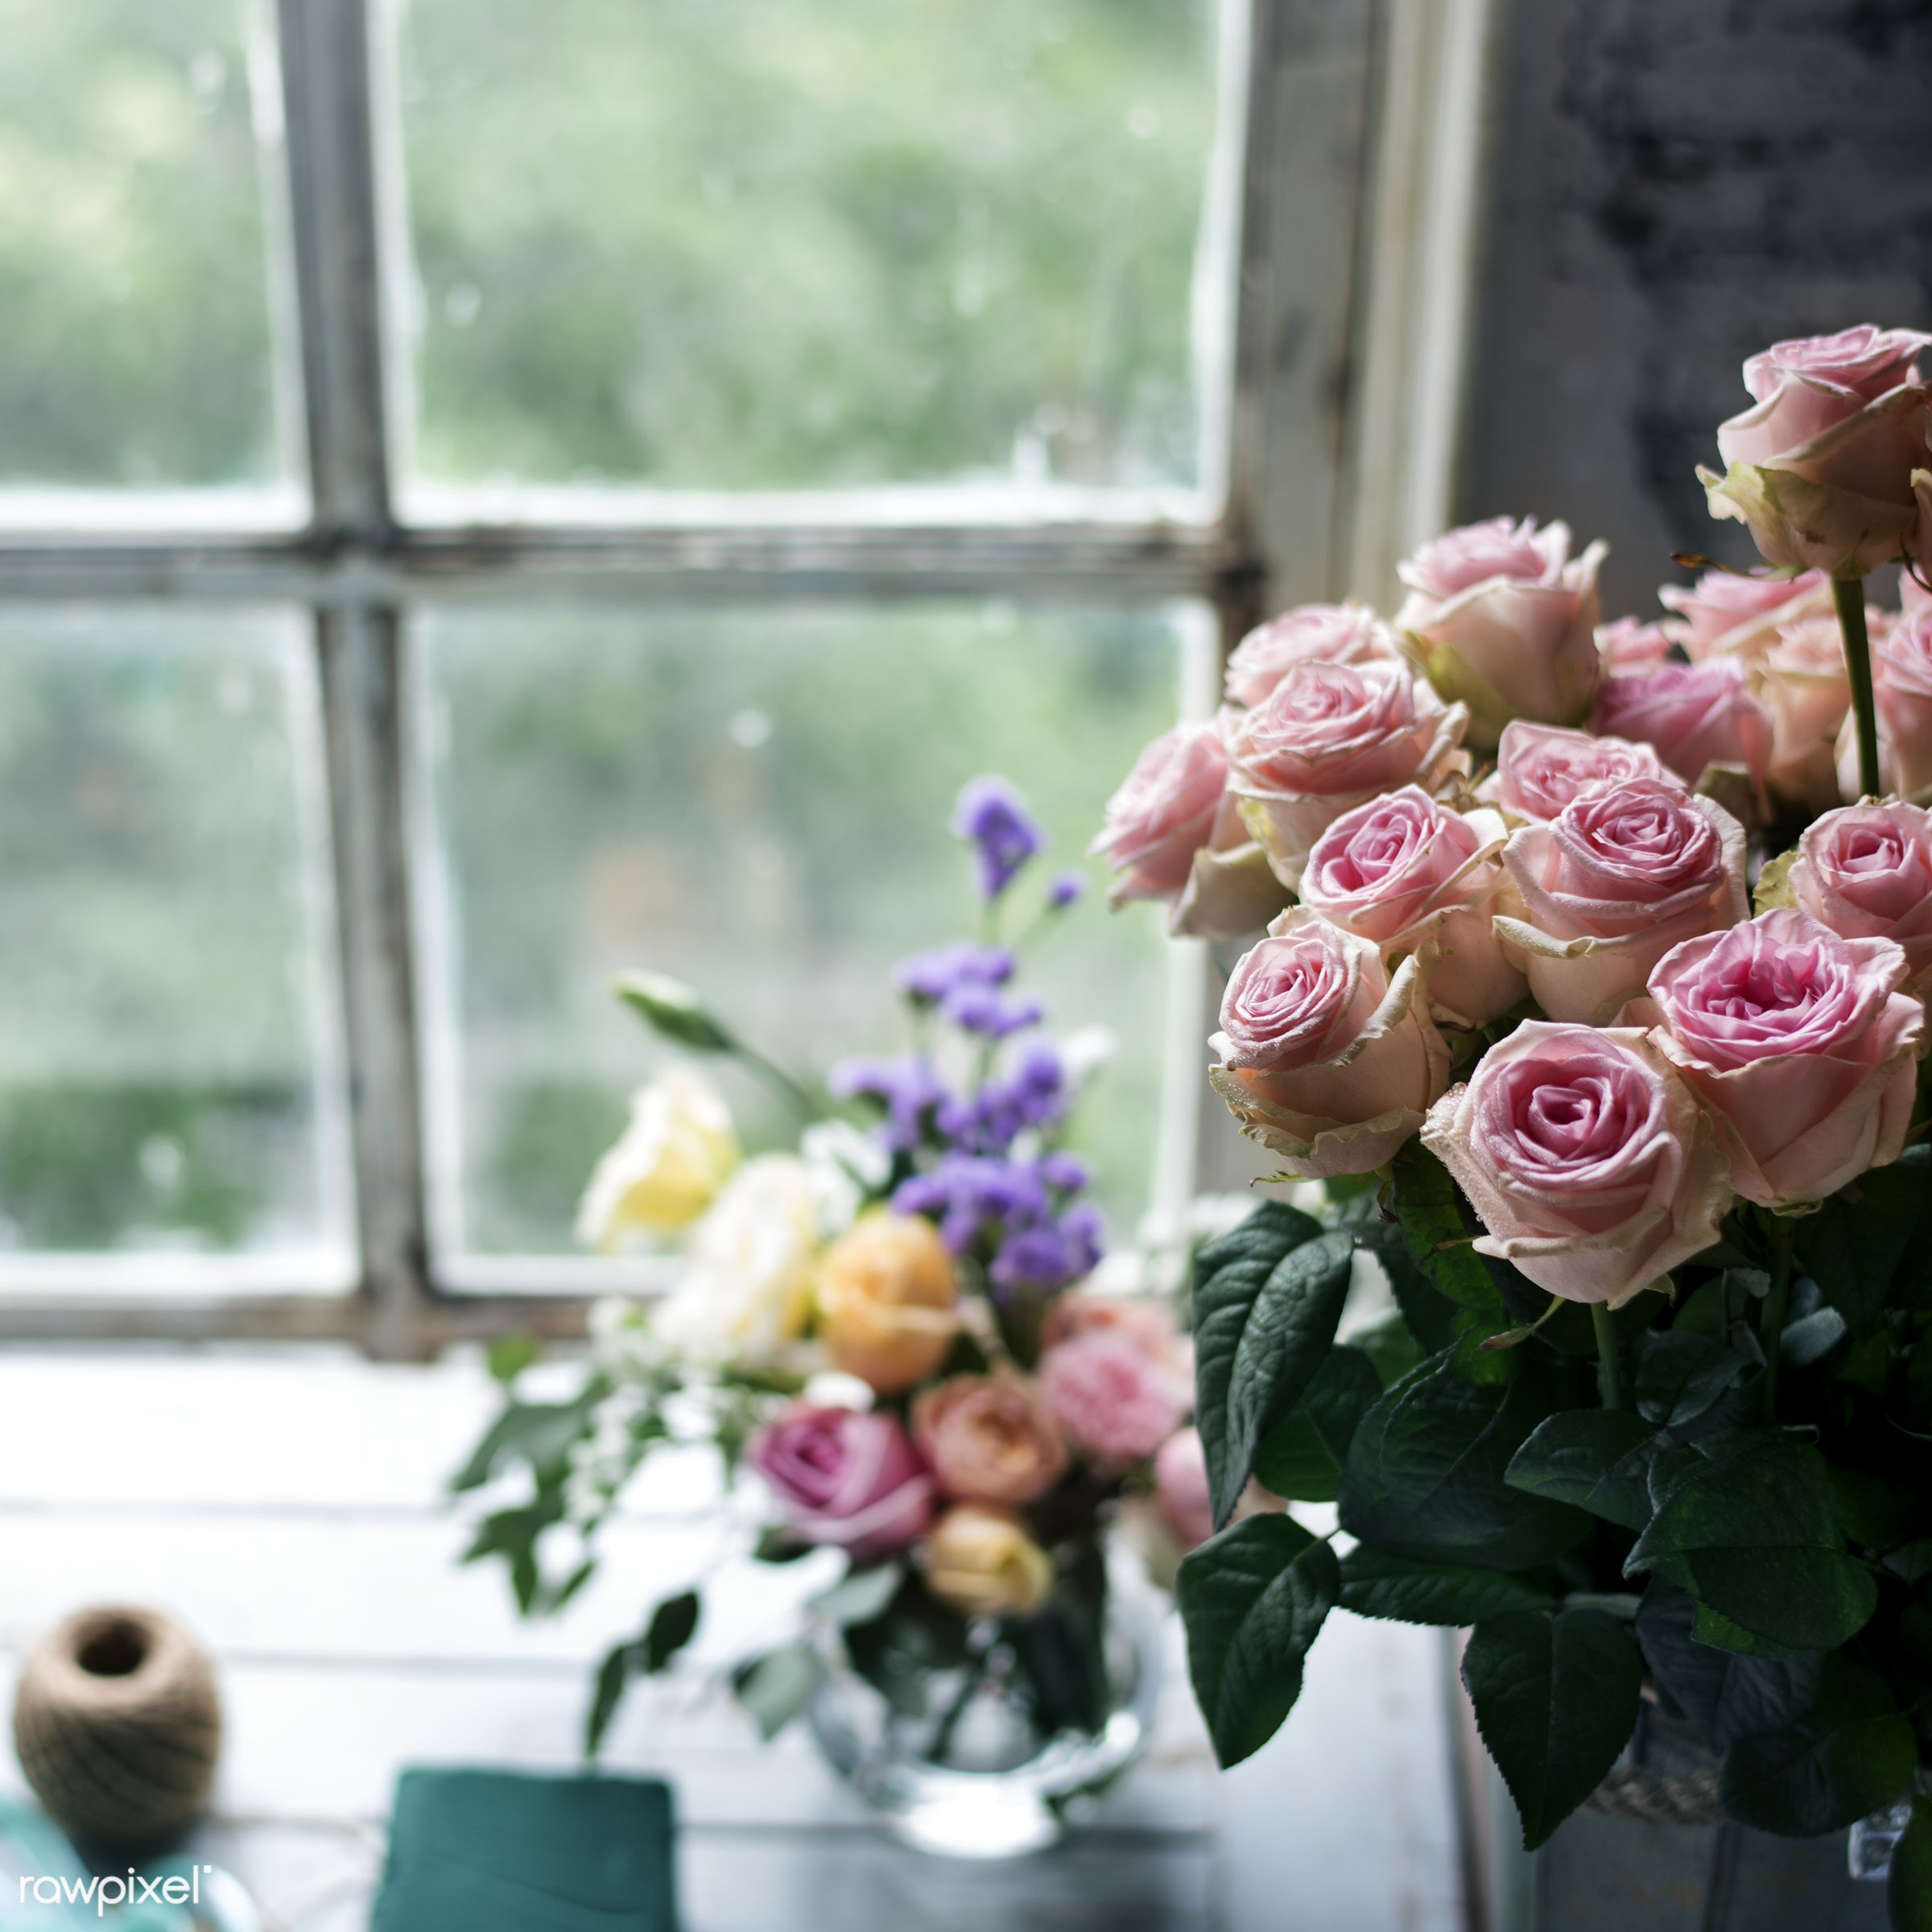 Closeup of a bouquet of roses - bouquet, bunch, closeup, flowers, fresh, natural, pink, real, roses, window